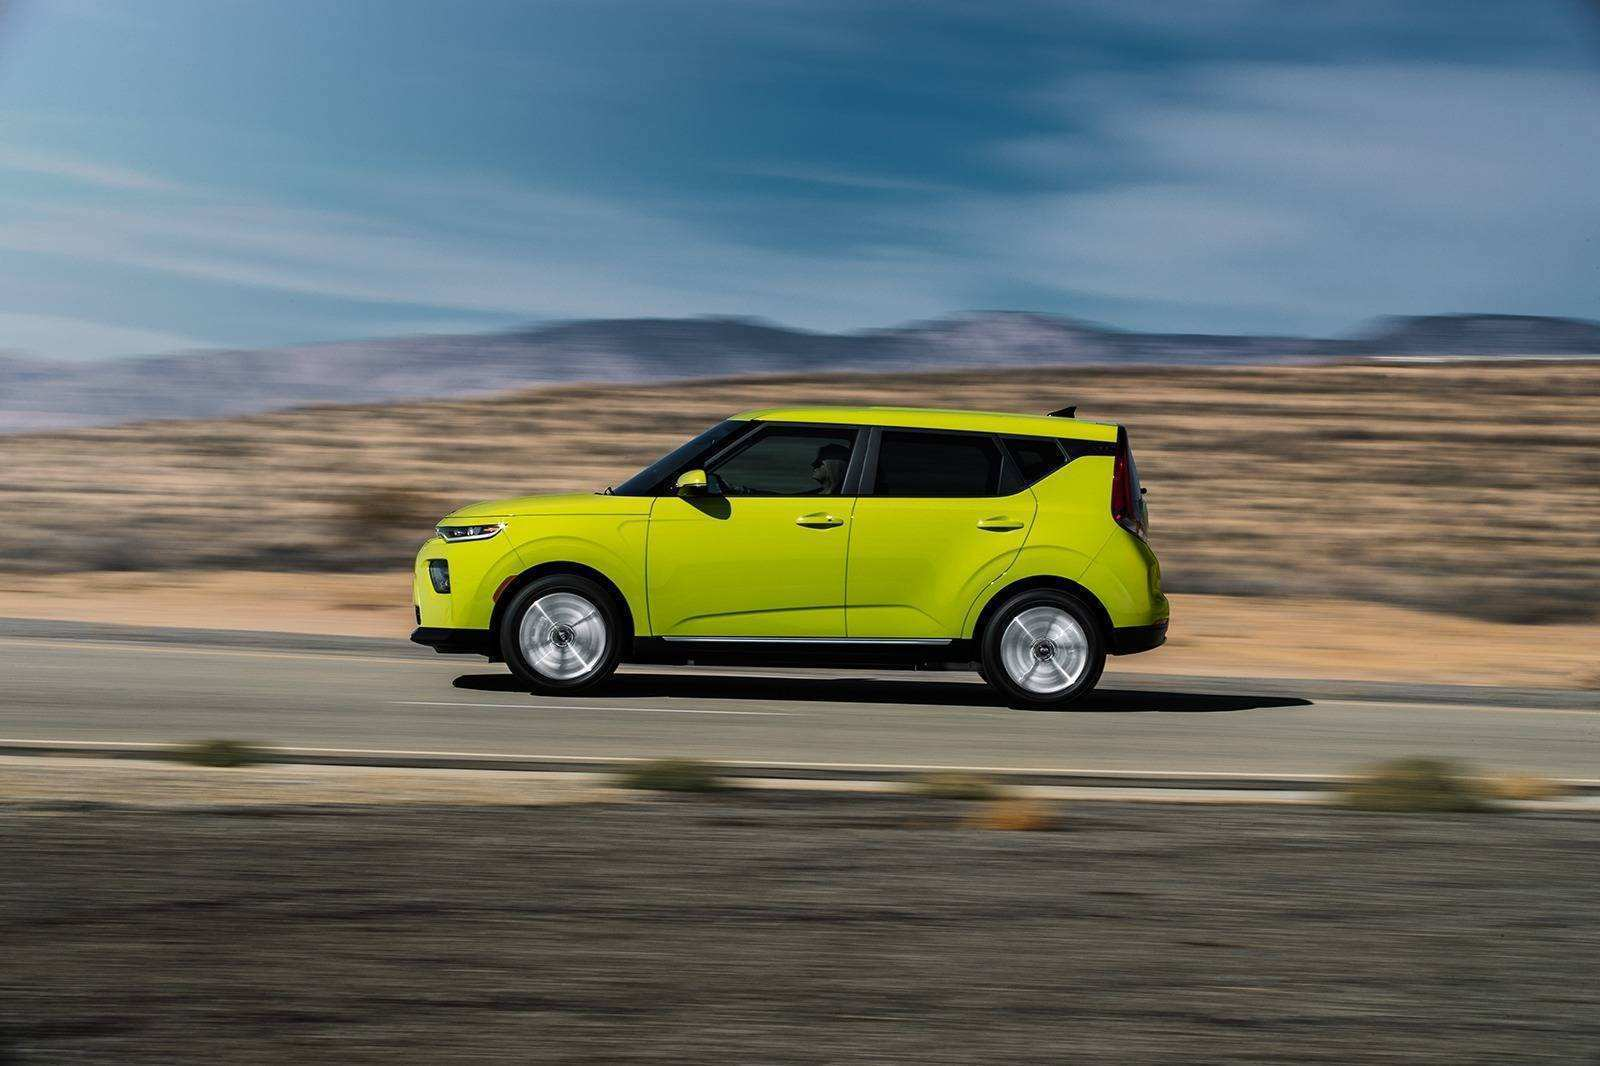 51 Concept of Kia 2020 Ev Speed Test with Kia 2020 Ev